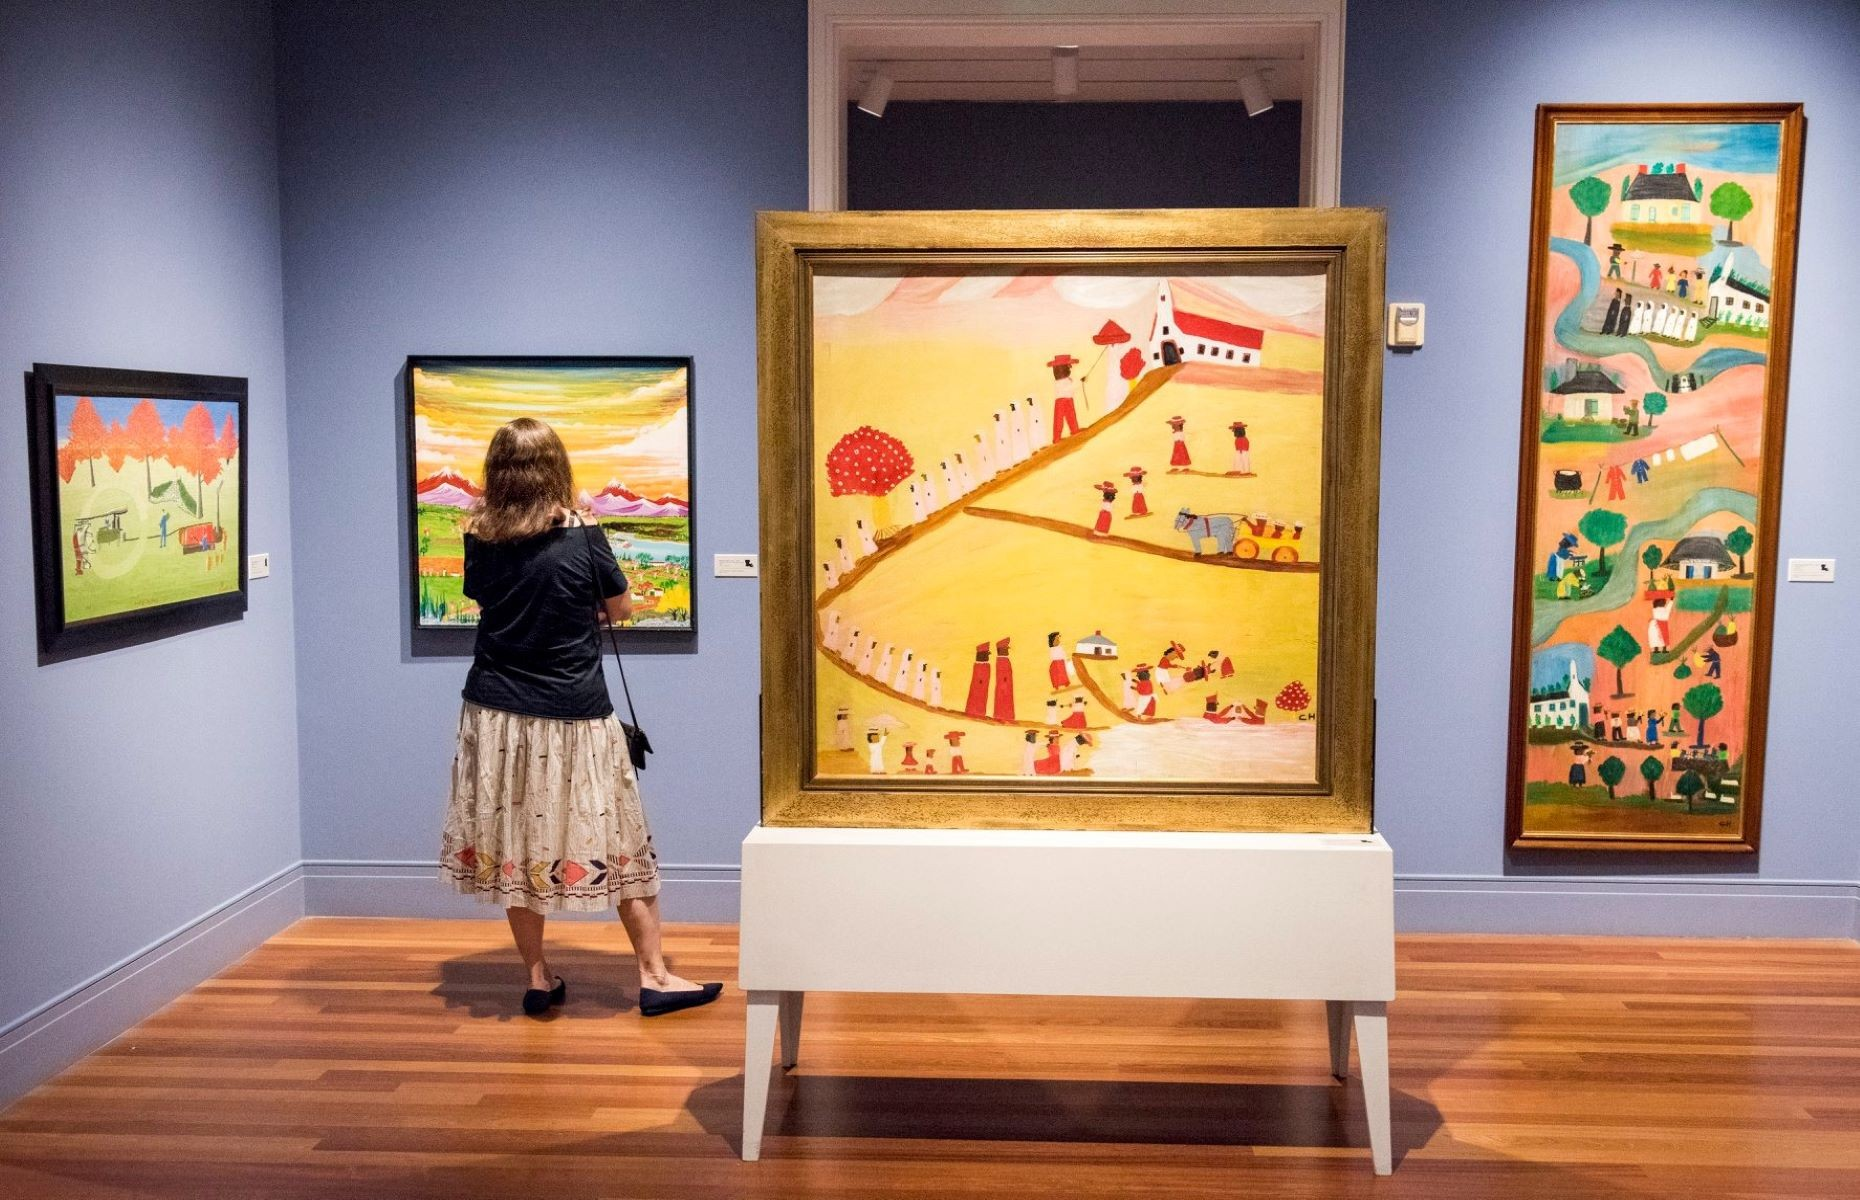 Art gallery in New Orleans (image: Ogden Museum of Southern Art/Facebook)